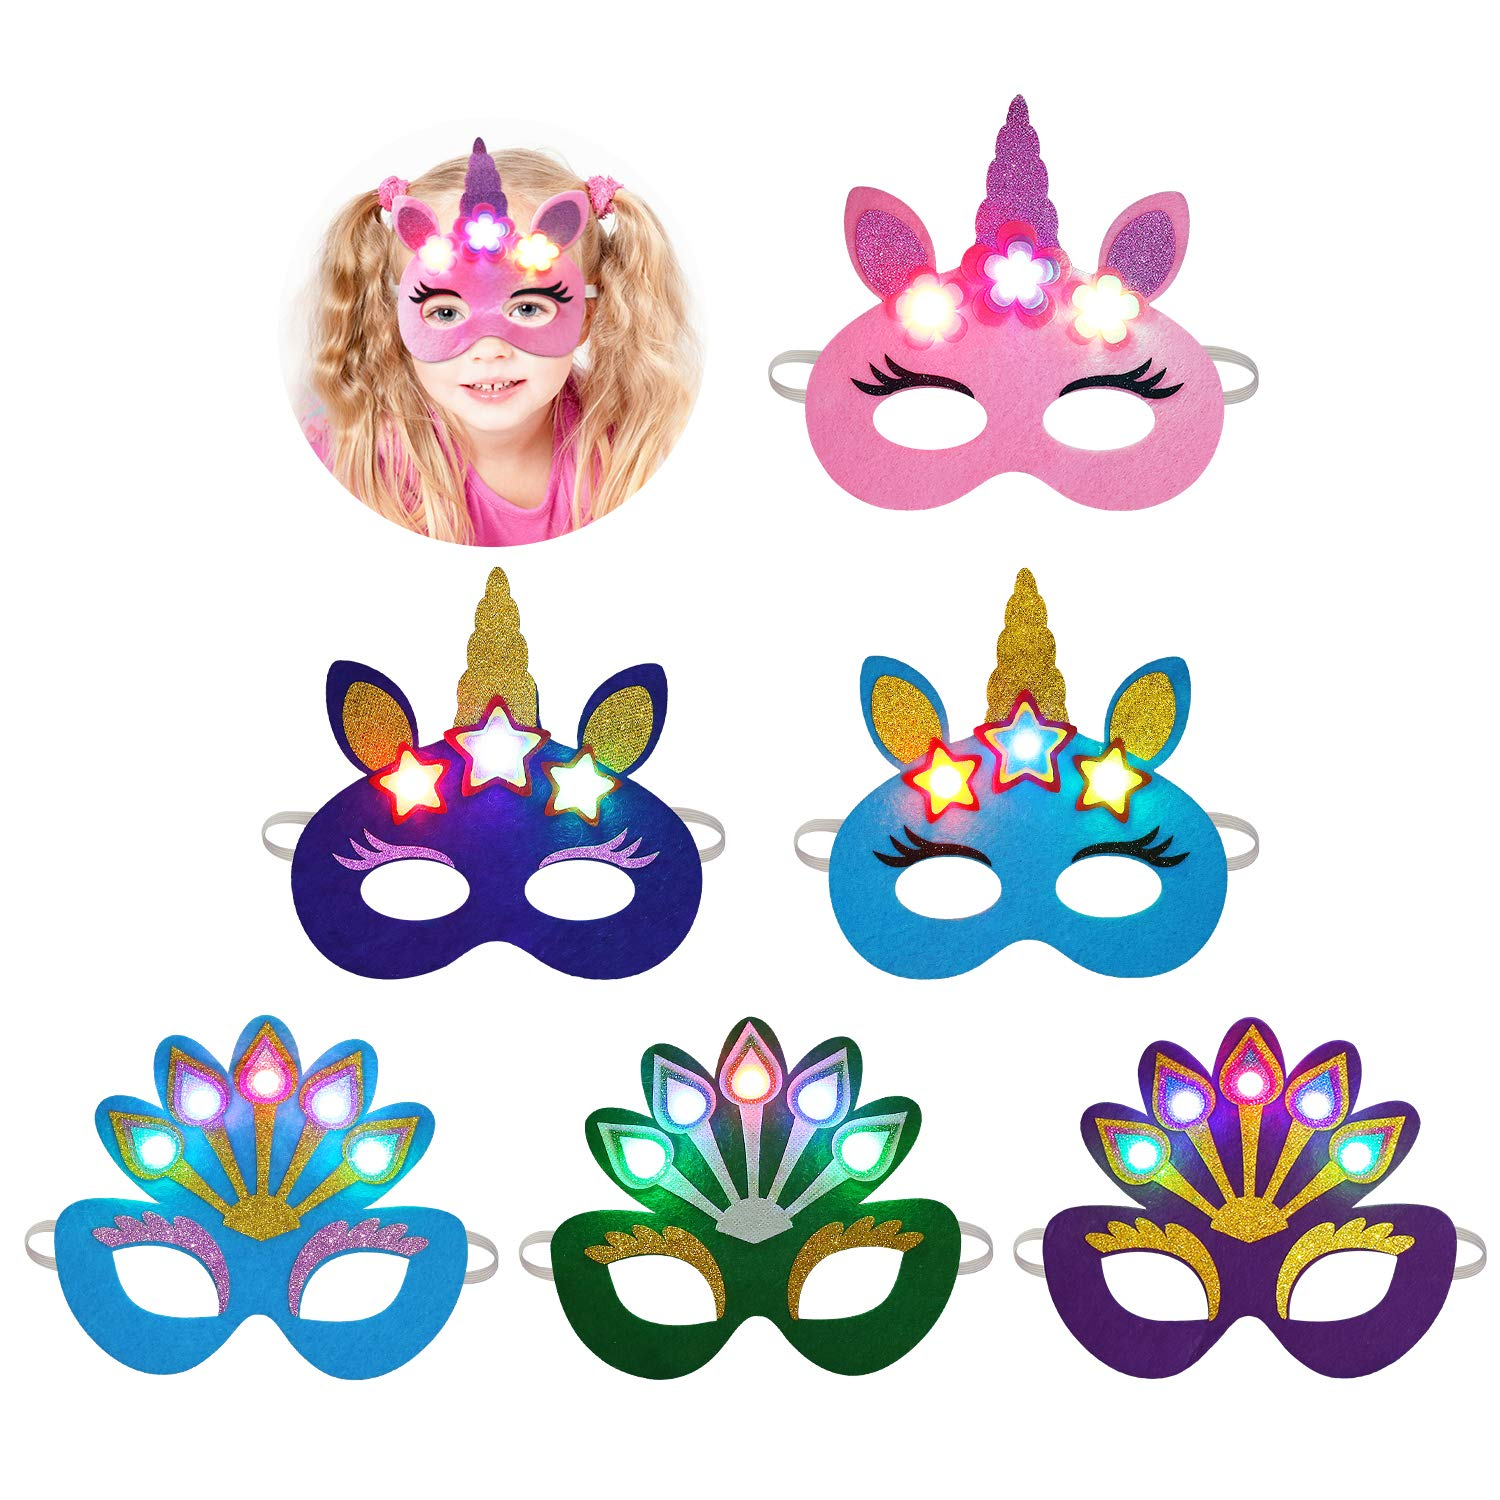 Halloween Mask LED, Aniwon 6PCS Light Up Cartoon Unicorn Peacock Eye Mask Half Mask Cute Costume Mask Christmas Carnival Party Favors Supplies for Kids Adults